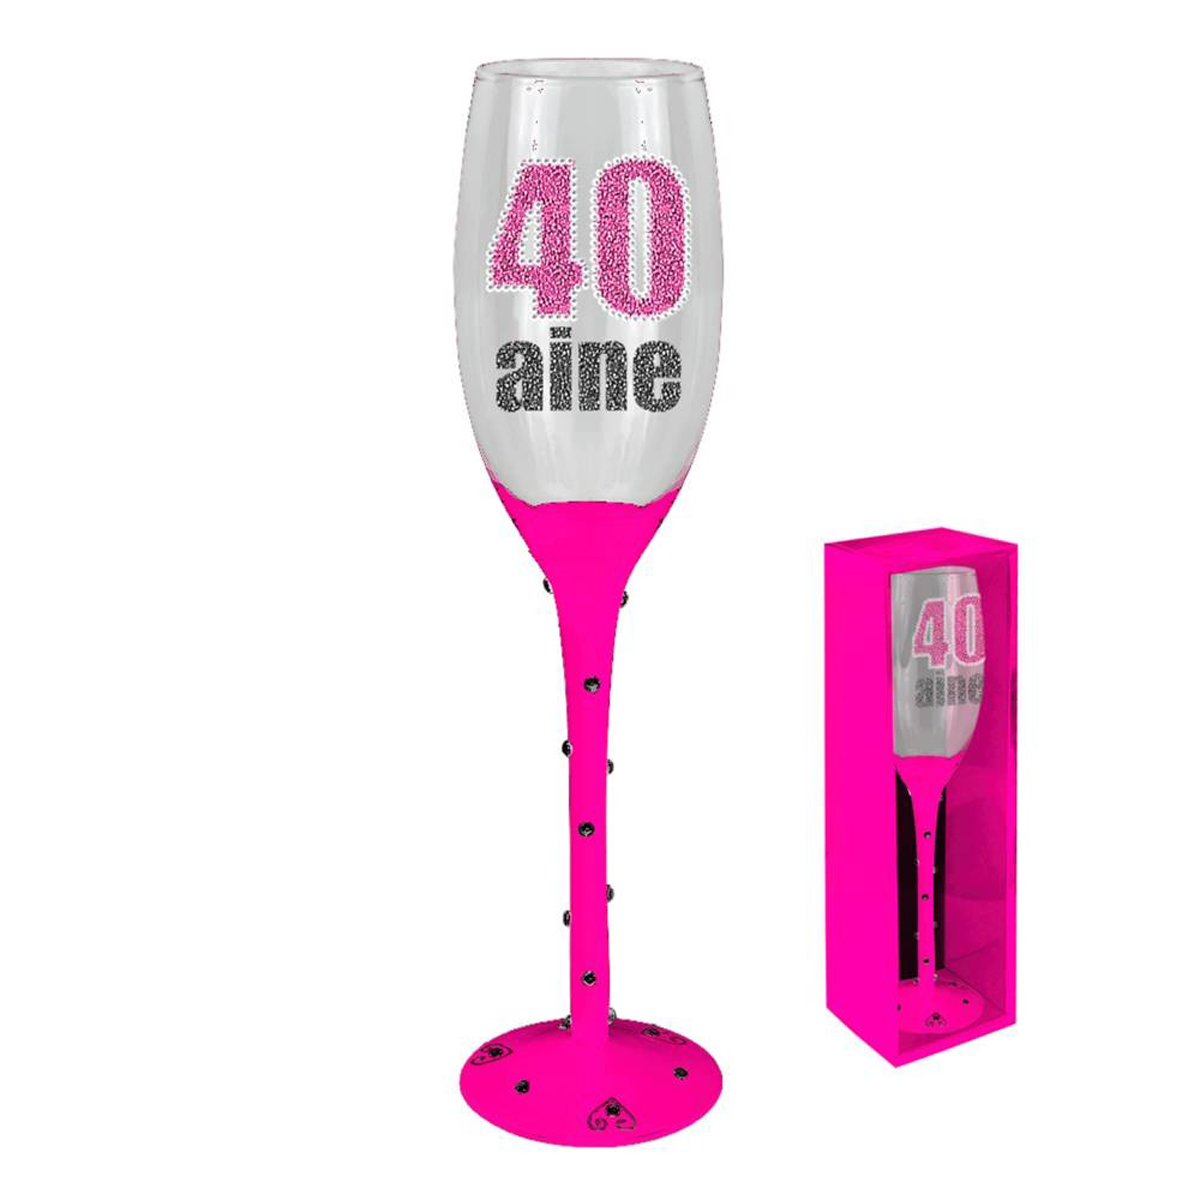 Coupe flute à champagne \'40 ans\' rose - [N4101]